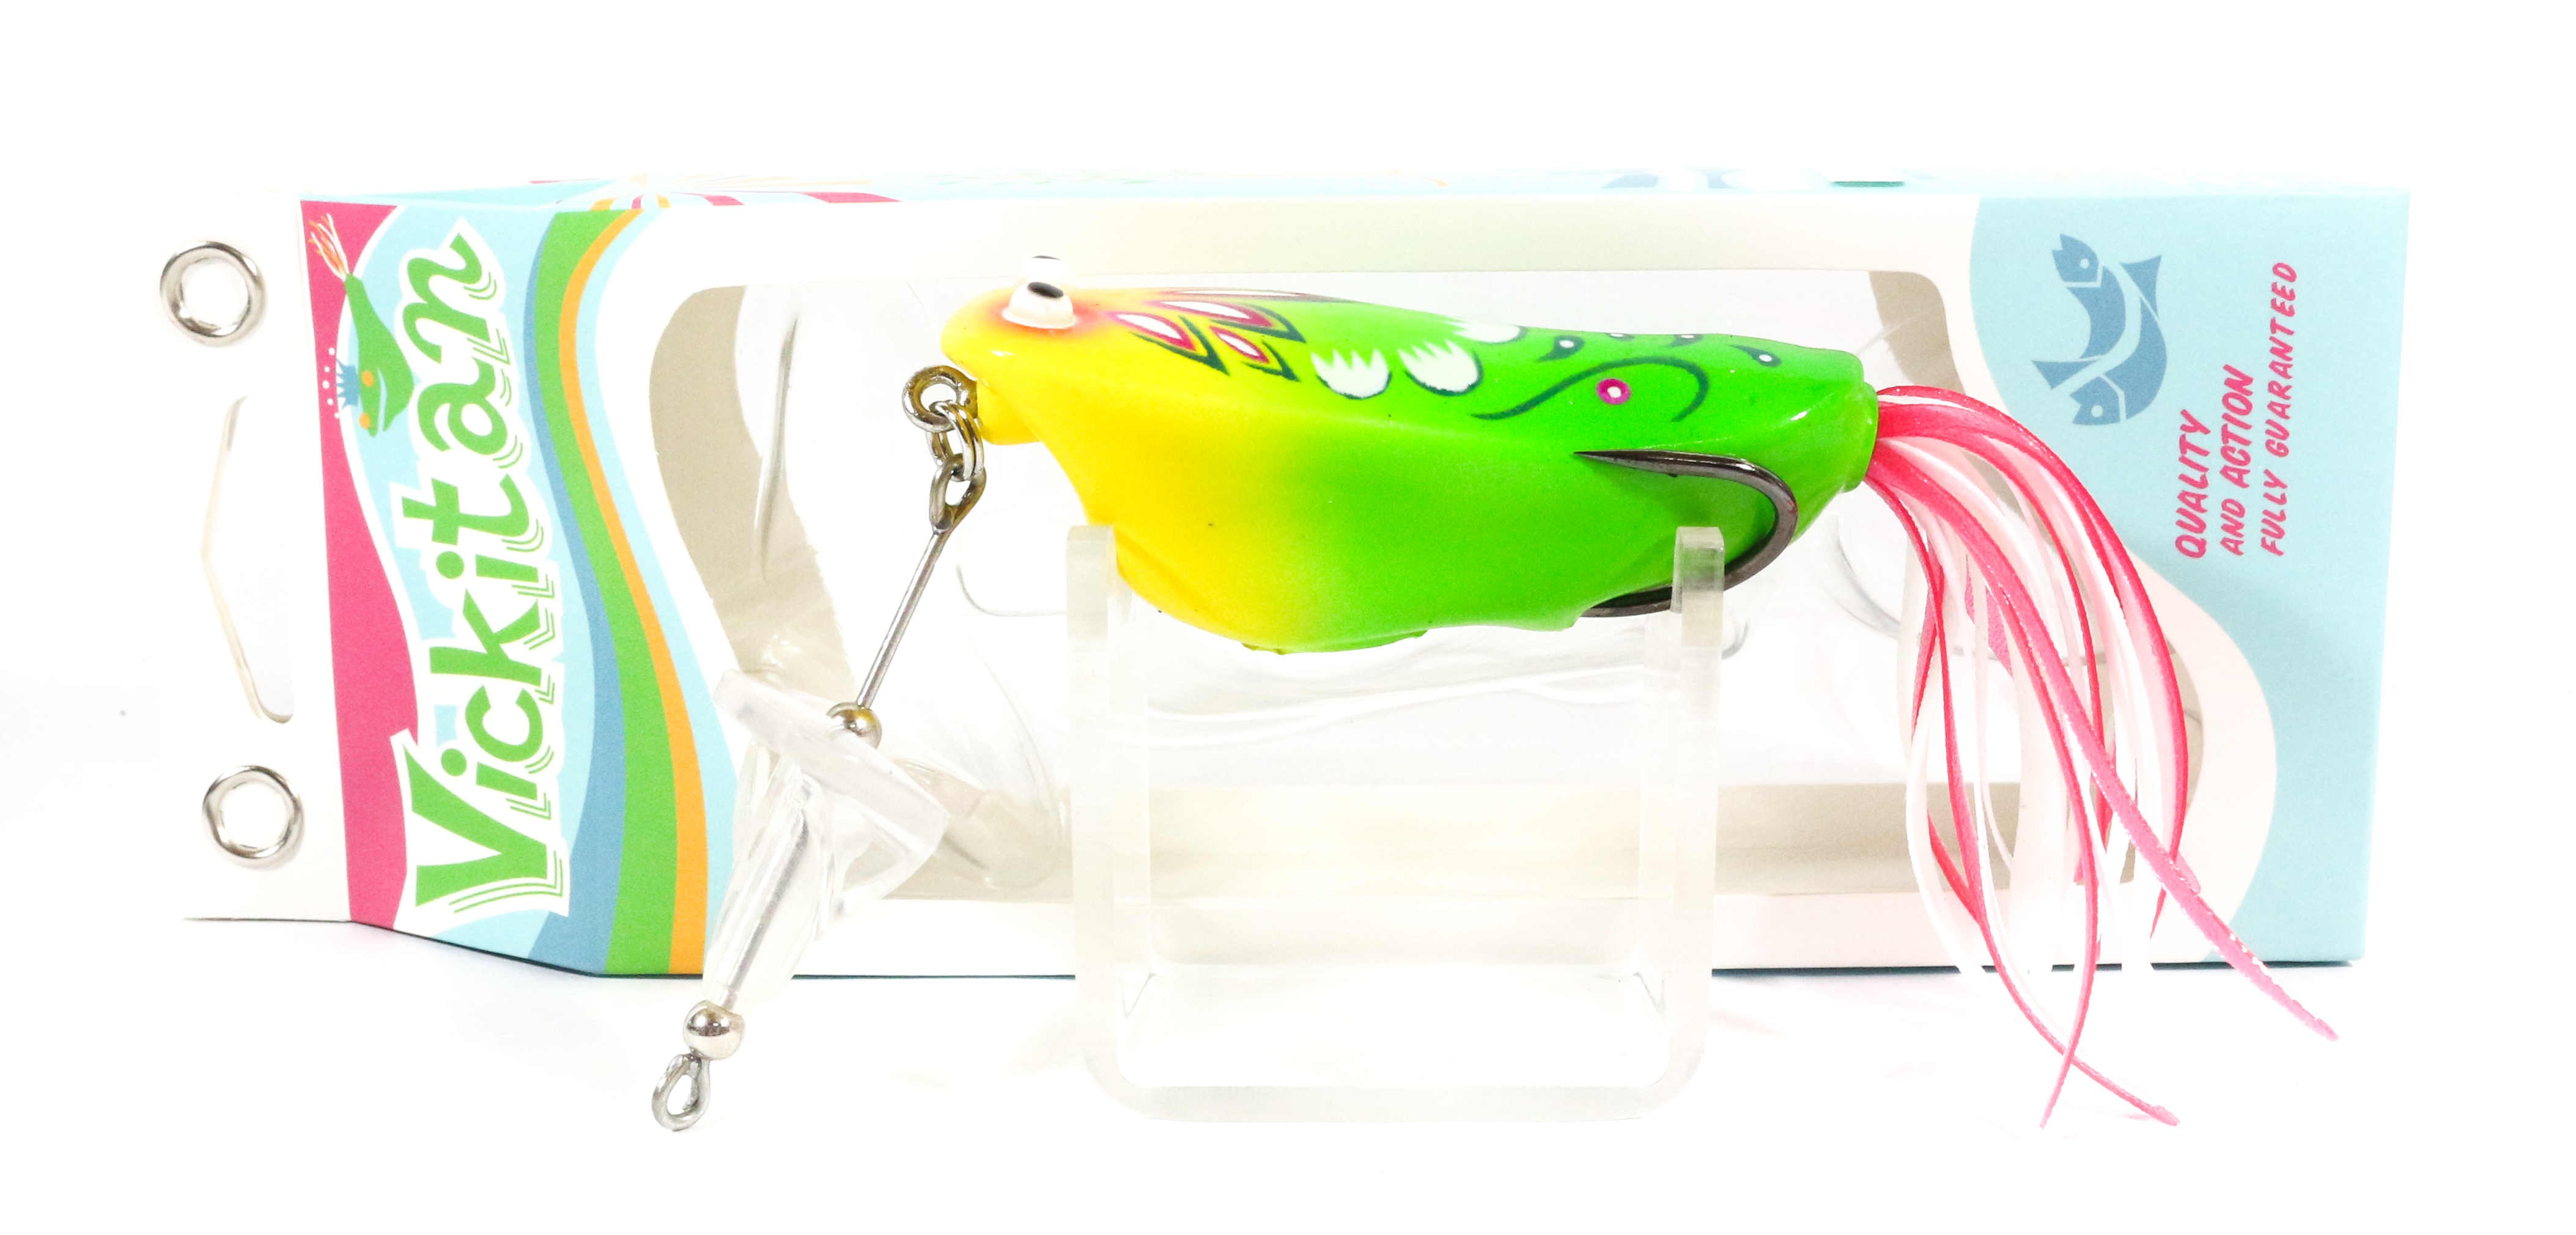 Sale Vickitan Buzz Topwater Soft Frog Lure 04 (1015)